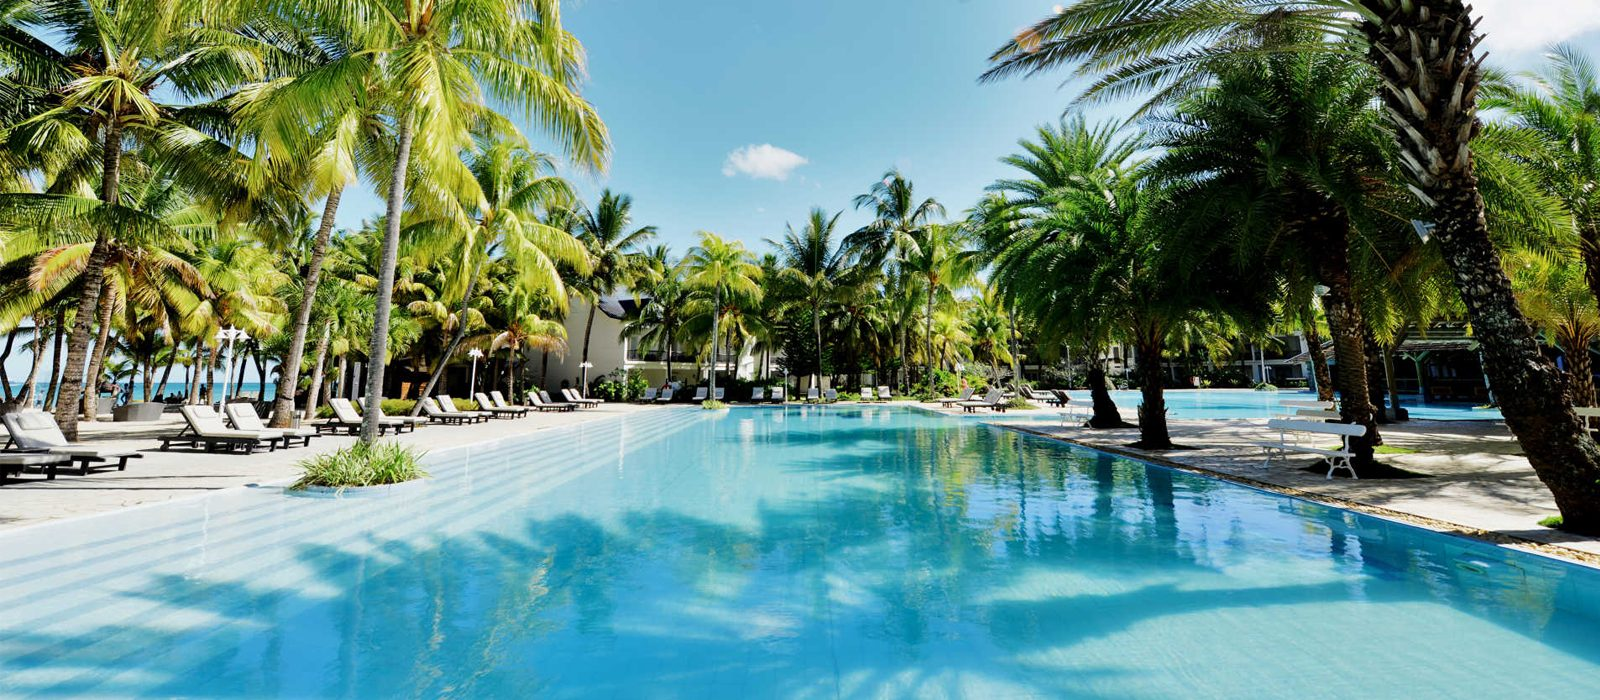 Mauritius Luxury Holiday Packages Ravenala Attitude Mauritius Header